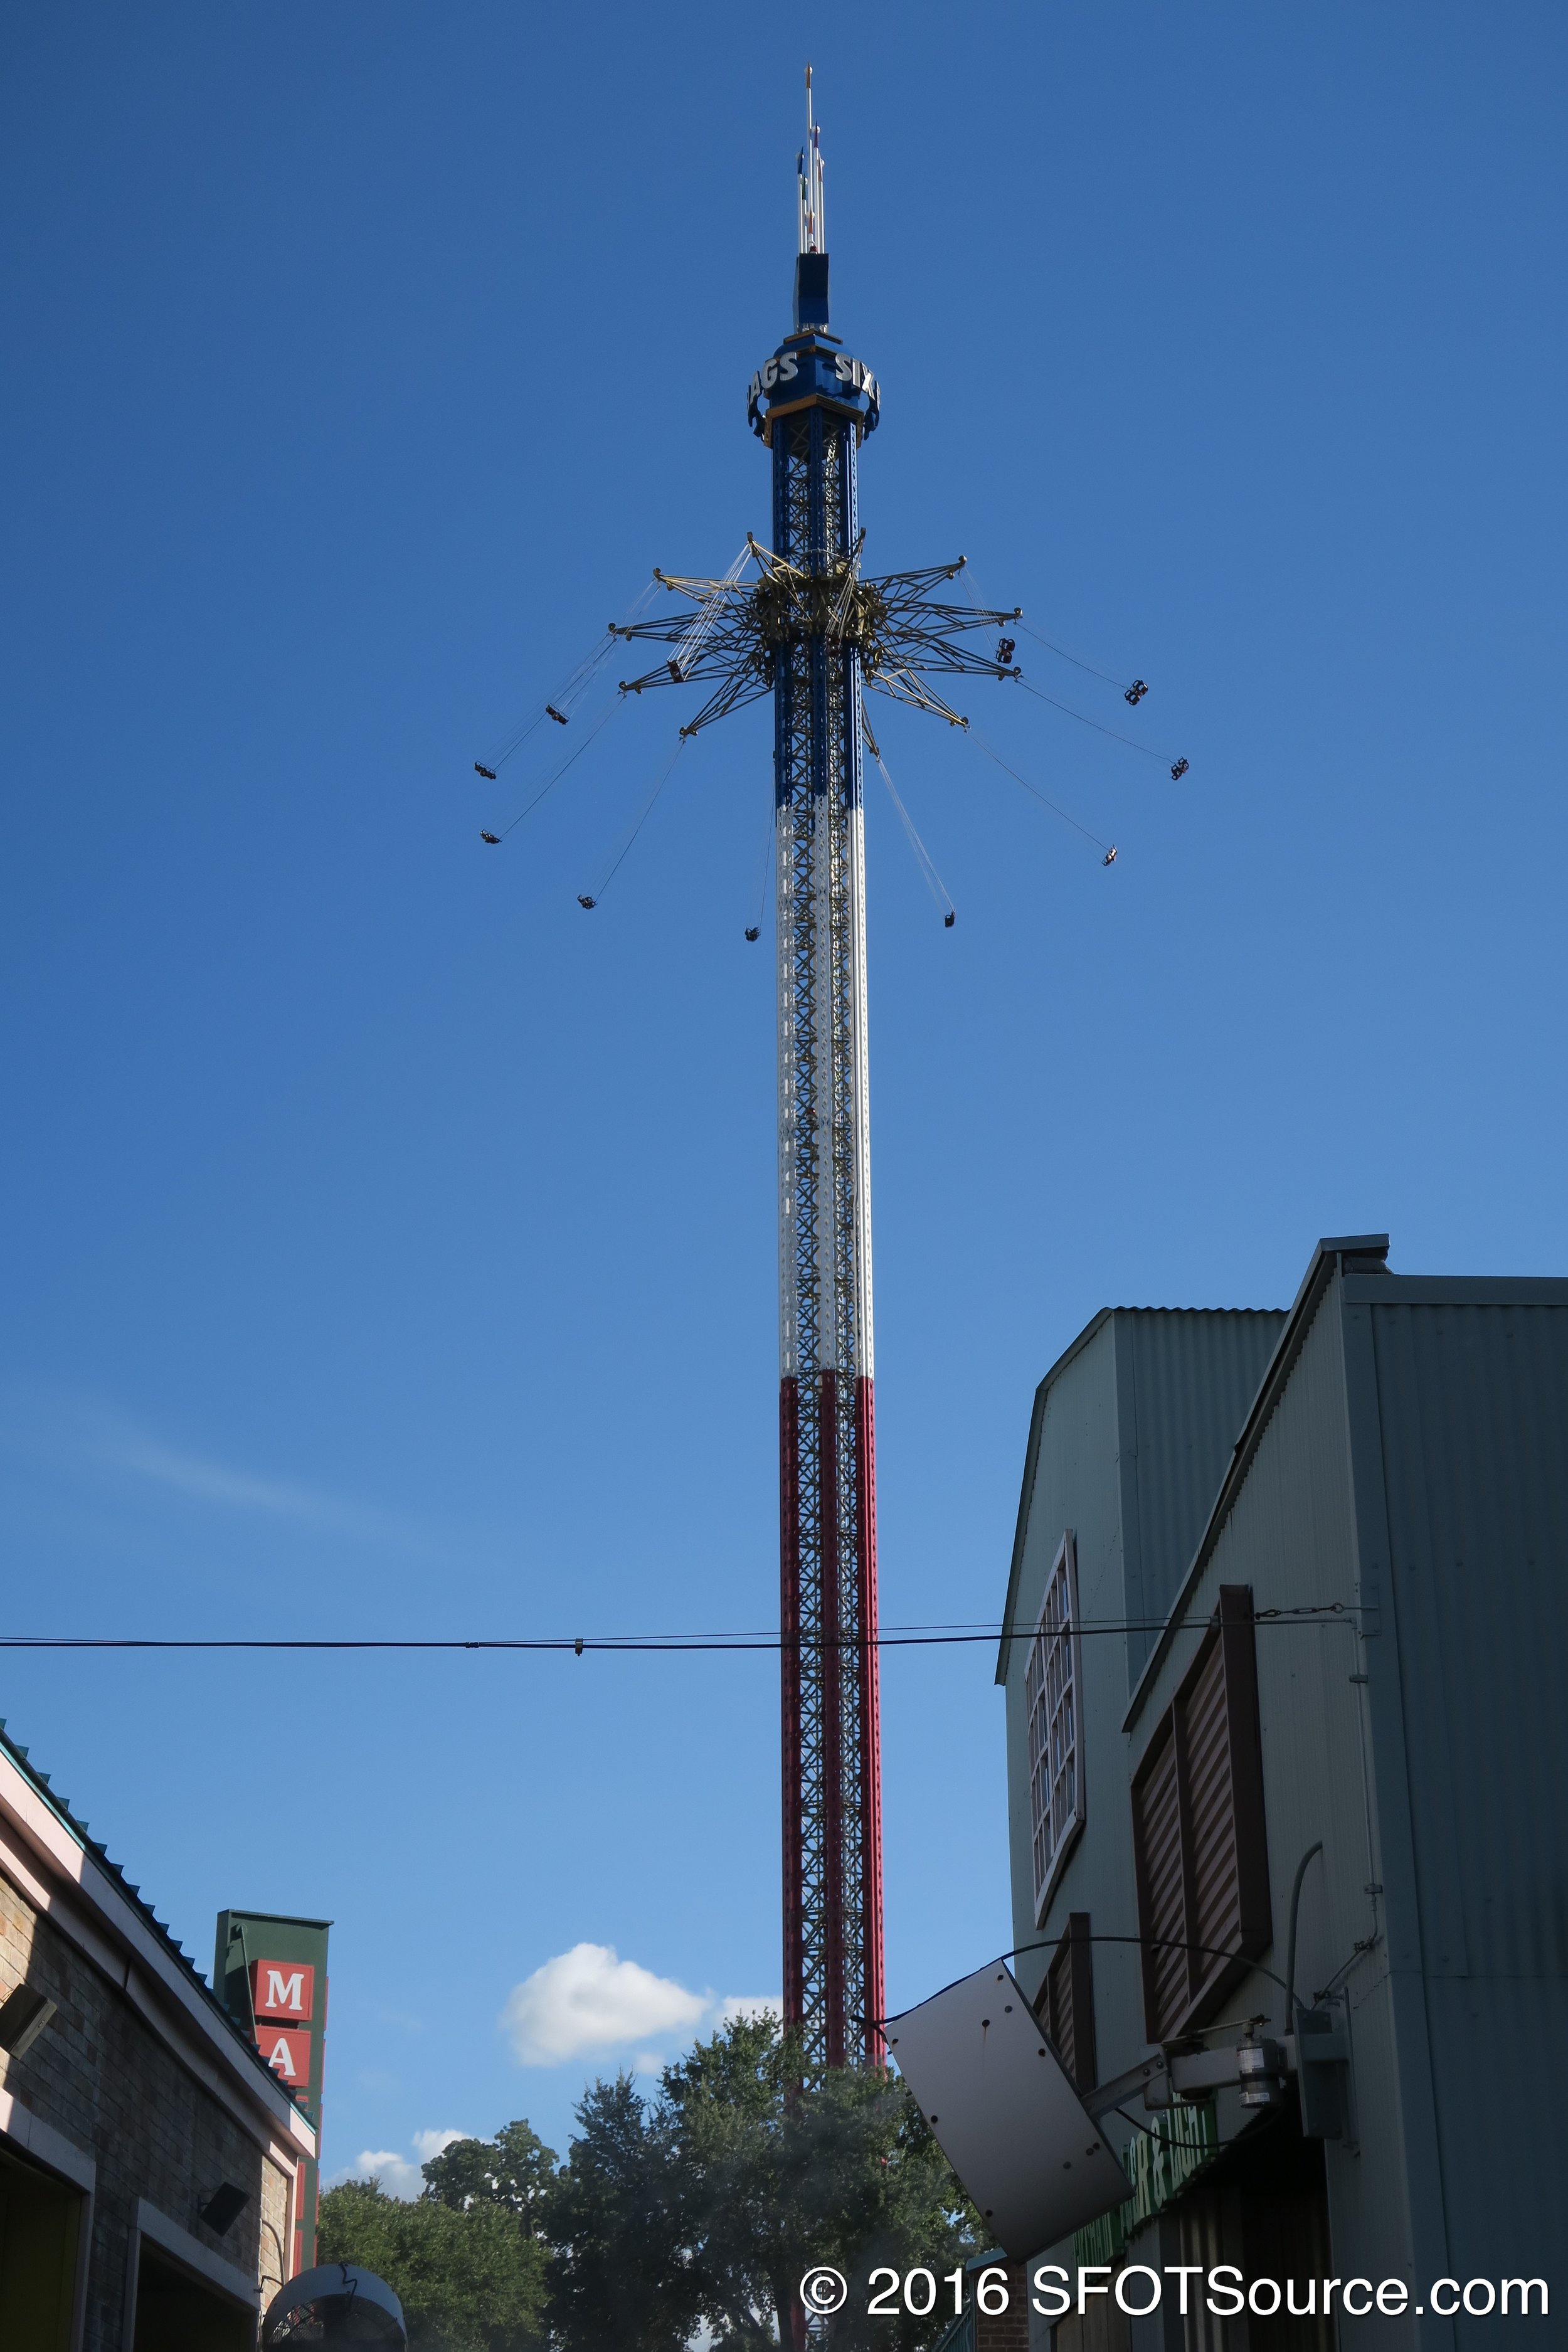 An overall look at the ride structure.